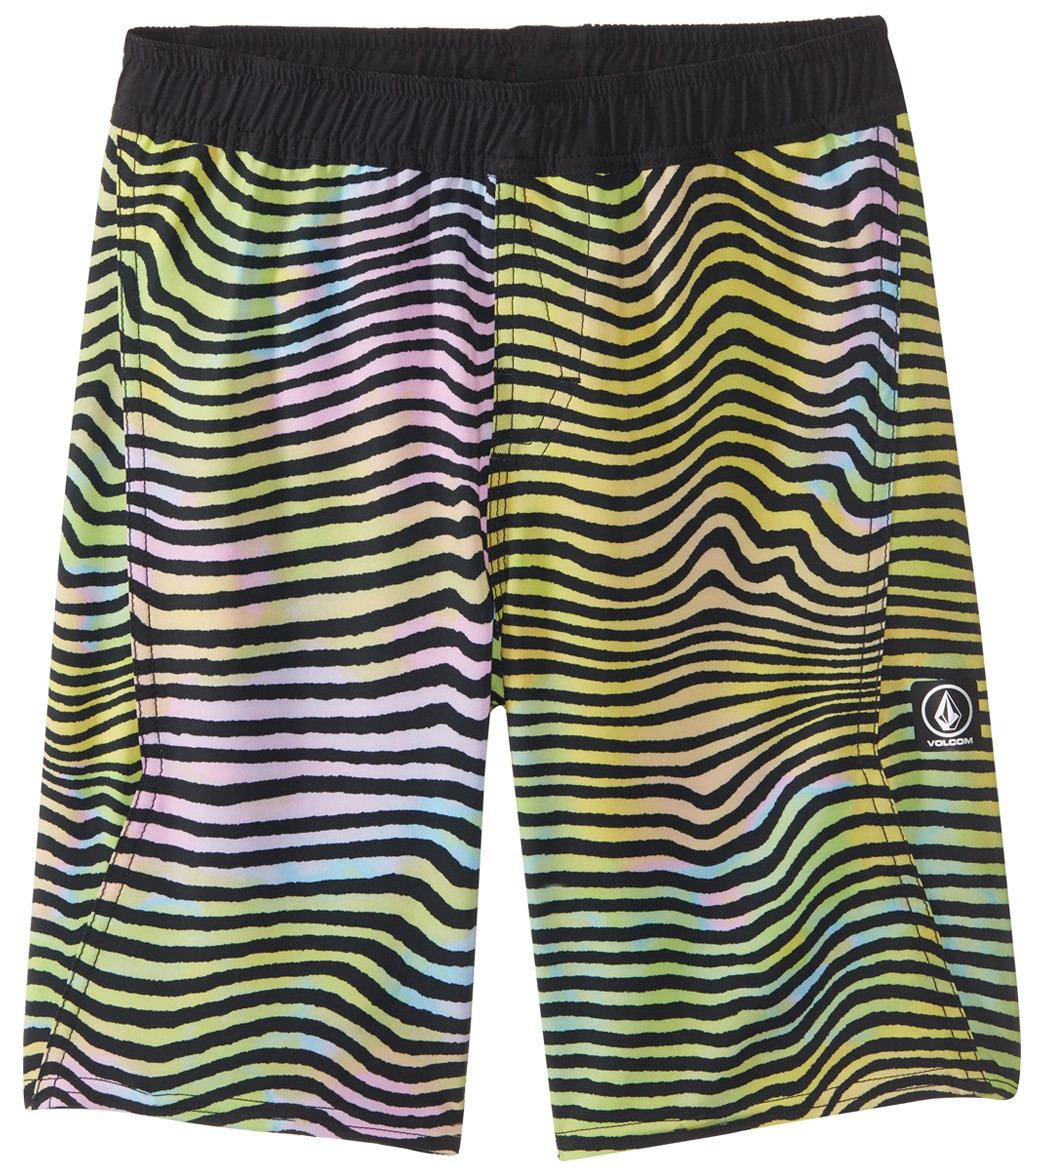 5251c9e2261 Volcom Boys' Vibes Volley Boardshort (Toddler, Little Kid, Big Kid) at  SwimOutlet.com